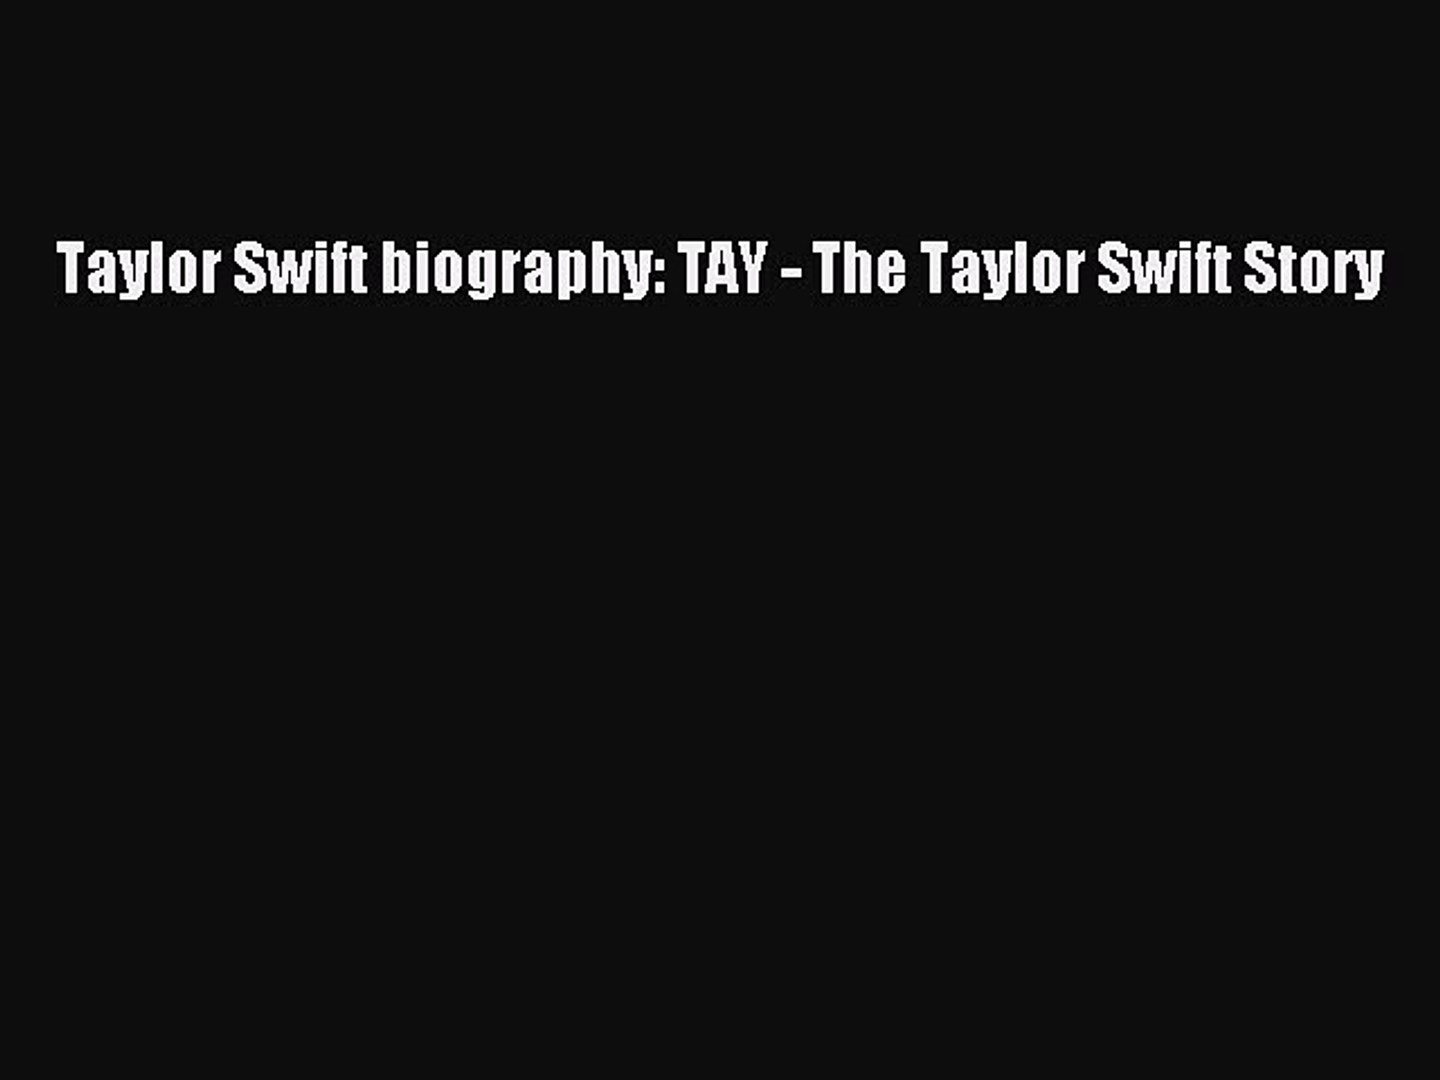 Download Books Taylor Swift biography: TAY - The Taylor Swift Story ebook textbooks